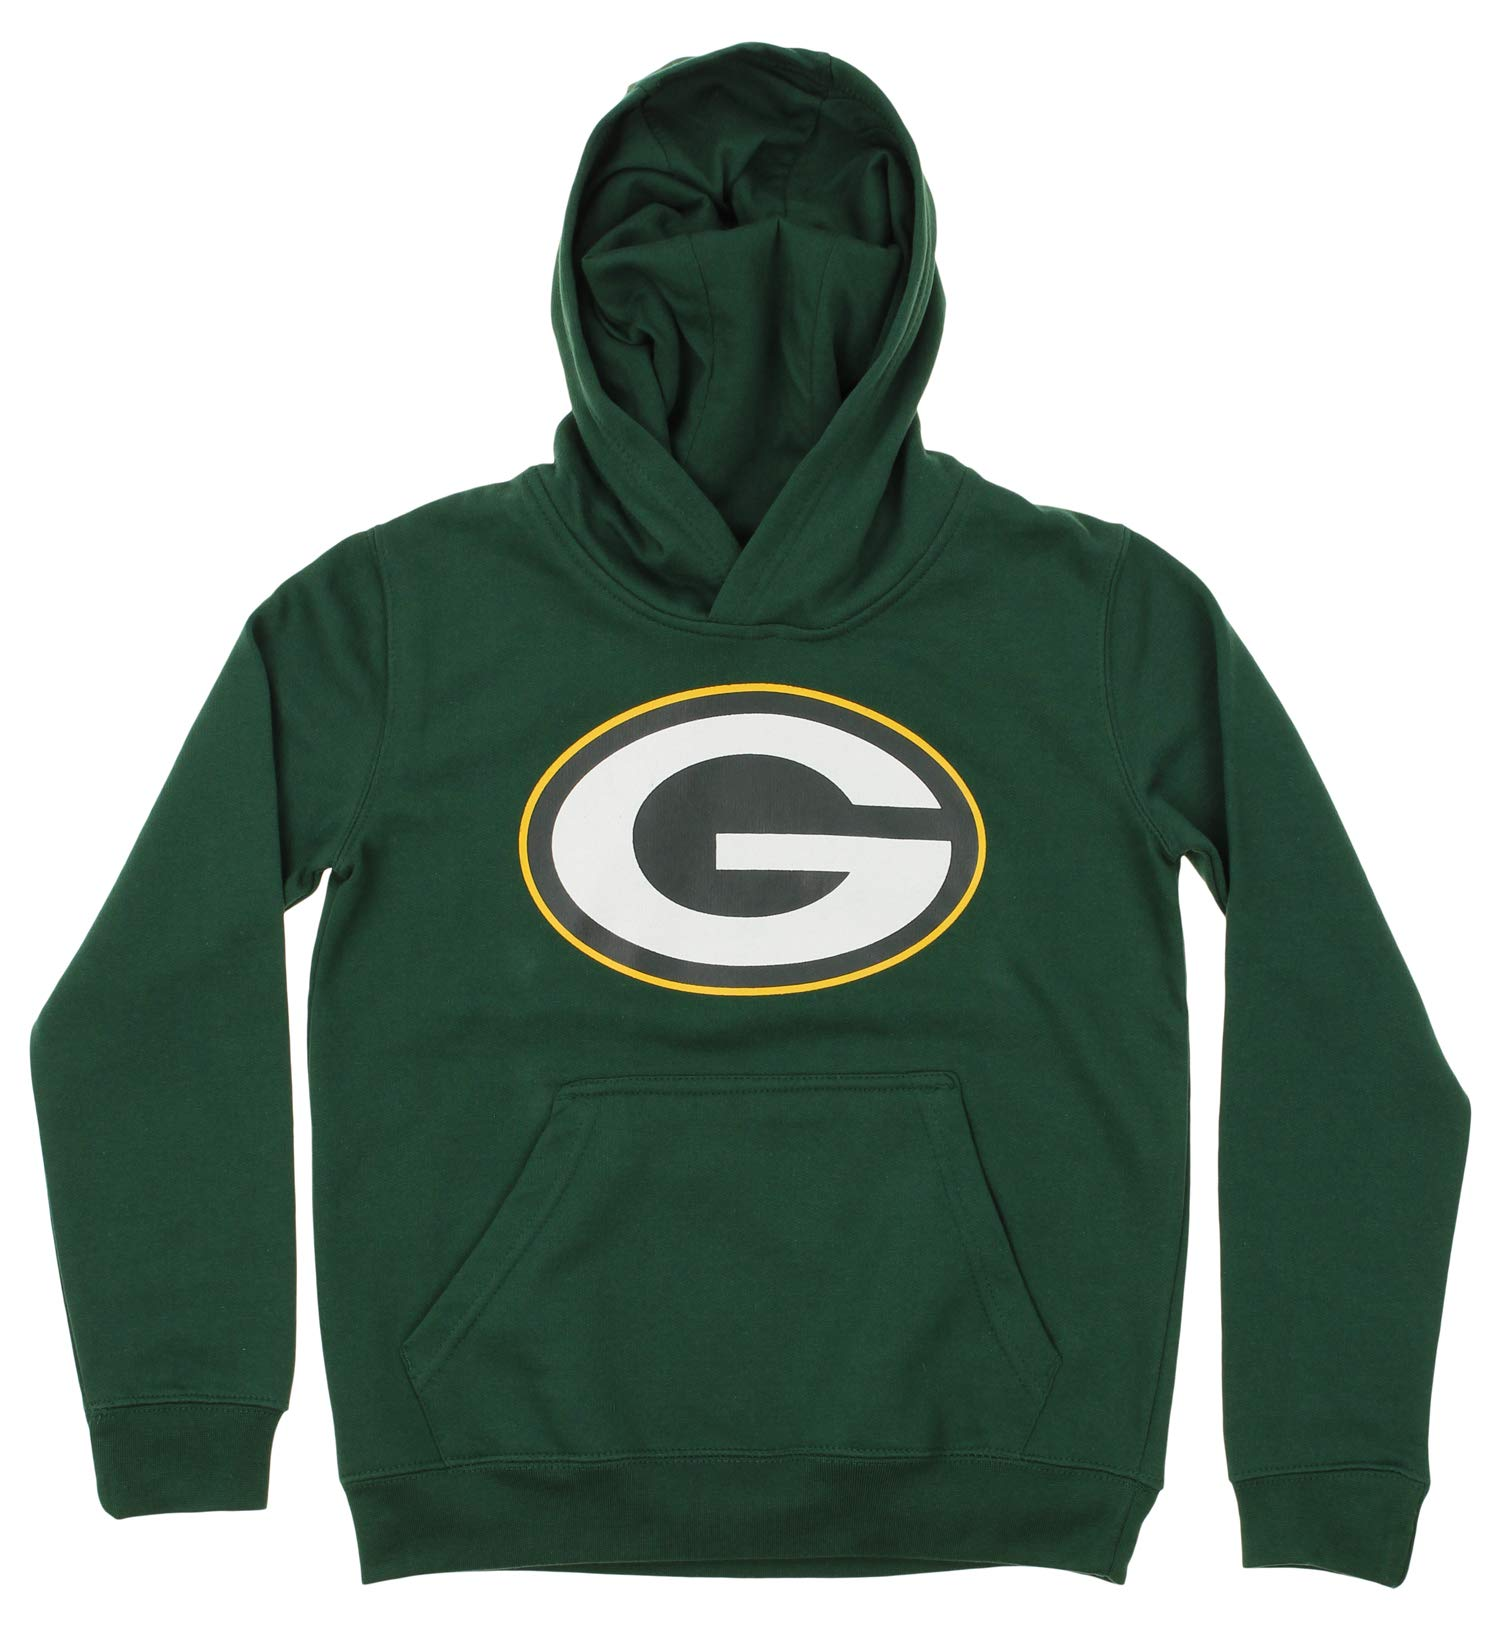 Outerstuff NFL Youth Boy s (8-20) Primary Logo Team Color Fleece Hoodie 99f856a17